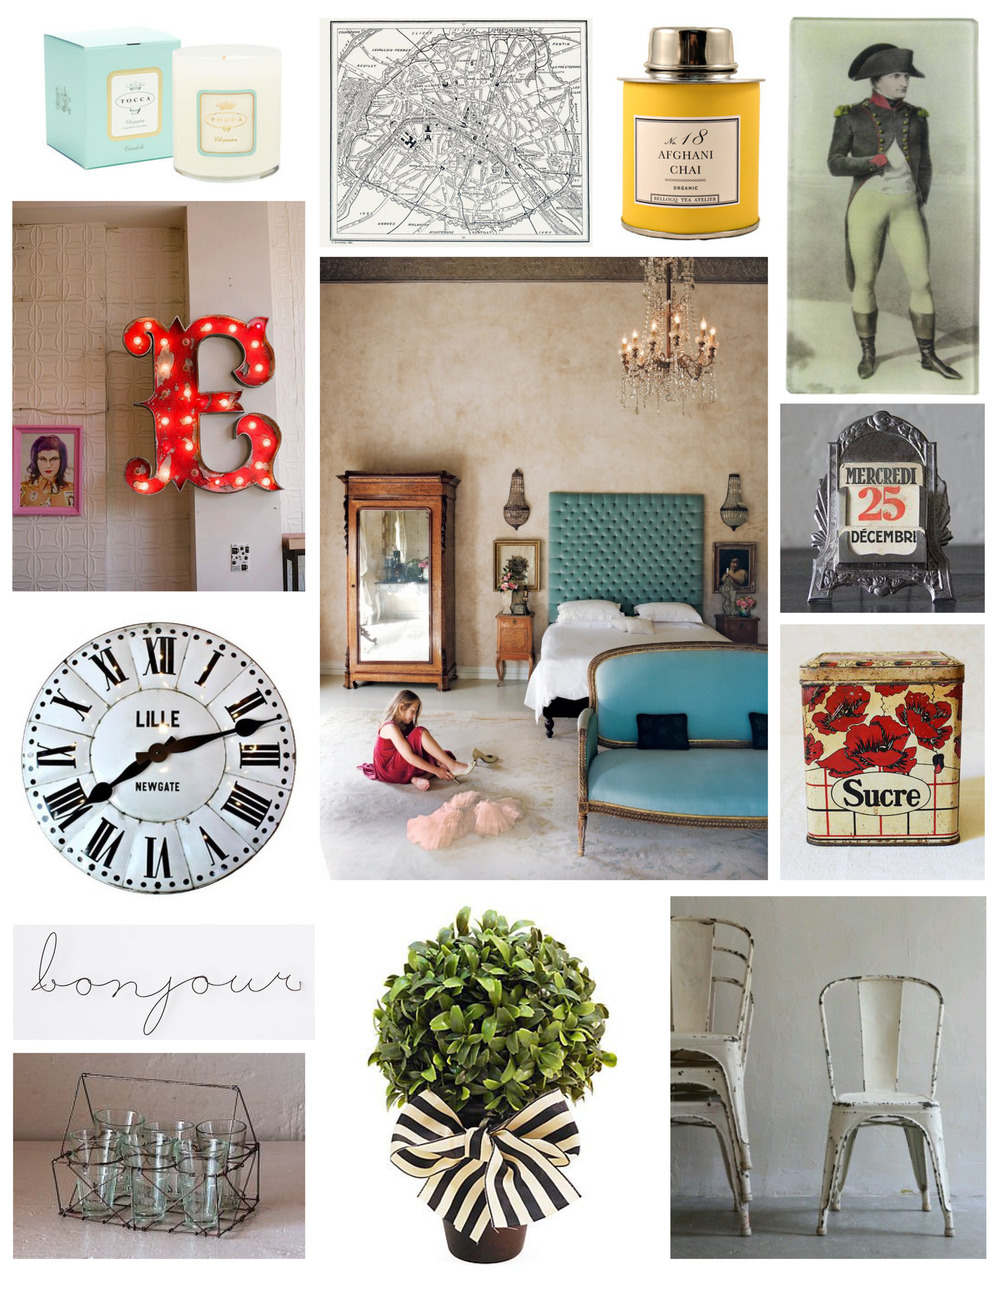 Candle  |  Map  |  Tea  |  Platter  |  Letter  |  Room  |  Date  |  Tin  |  Clock  |  Bonjour  |  Glasses  |  Plant  |  Chairs